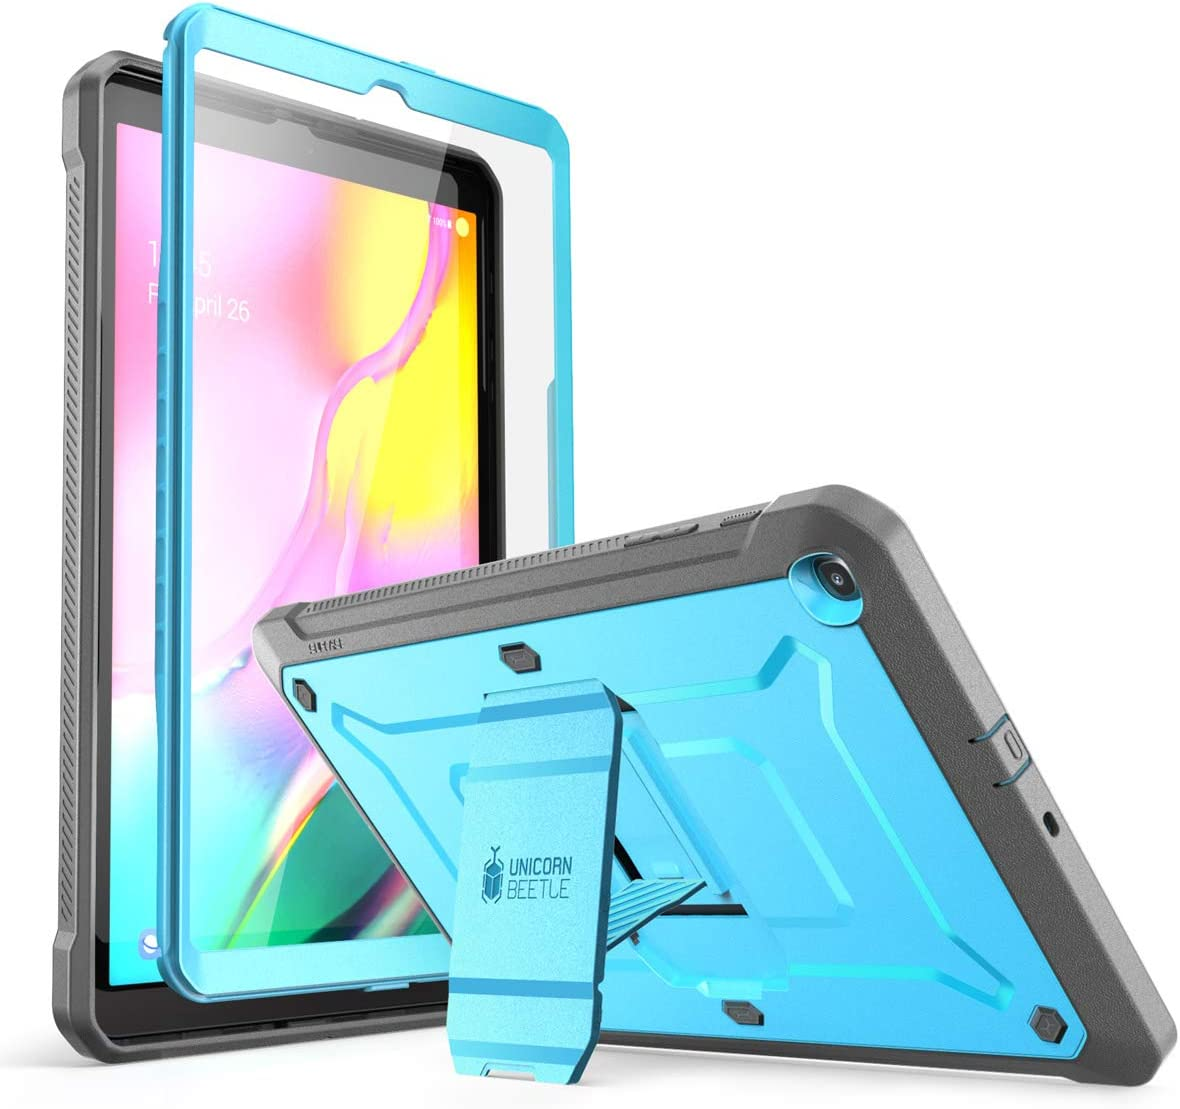 SUPCASE Unicorn Beetle Pro Series Case Designed for Galaxy Tab A 10.1 (2019 Release), Full-Body Rugged Heavy Duty Protective Tablet Case with Built-in Screen Protector (Blue)